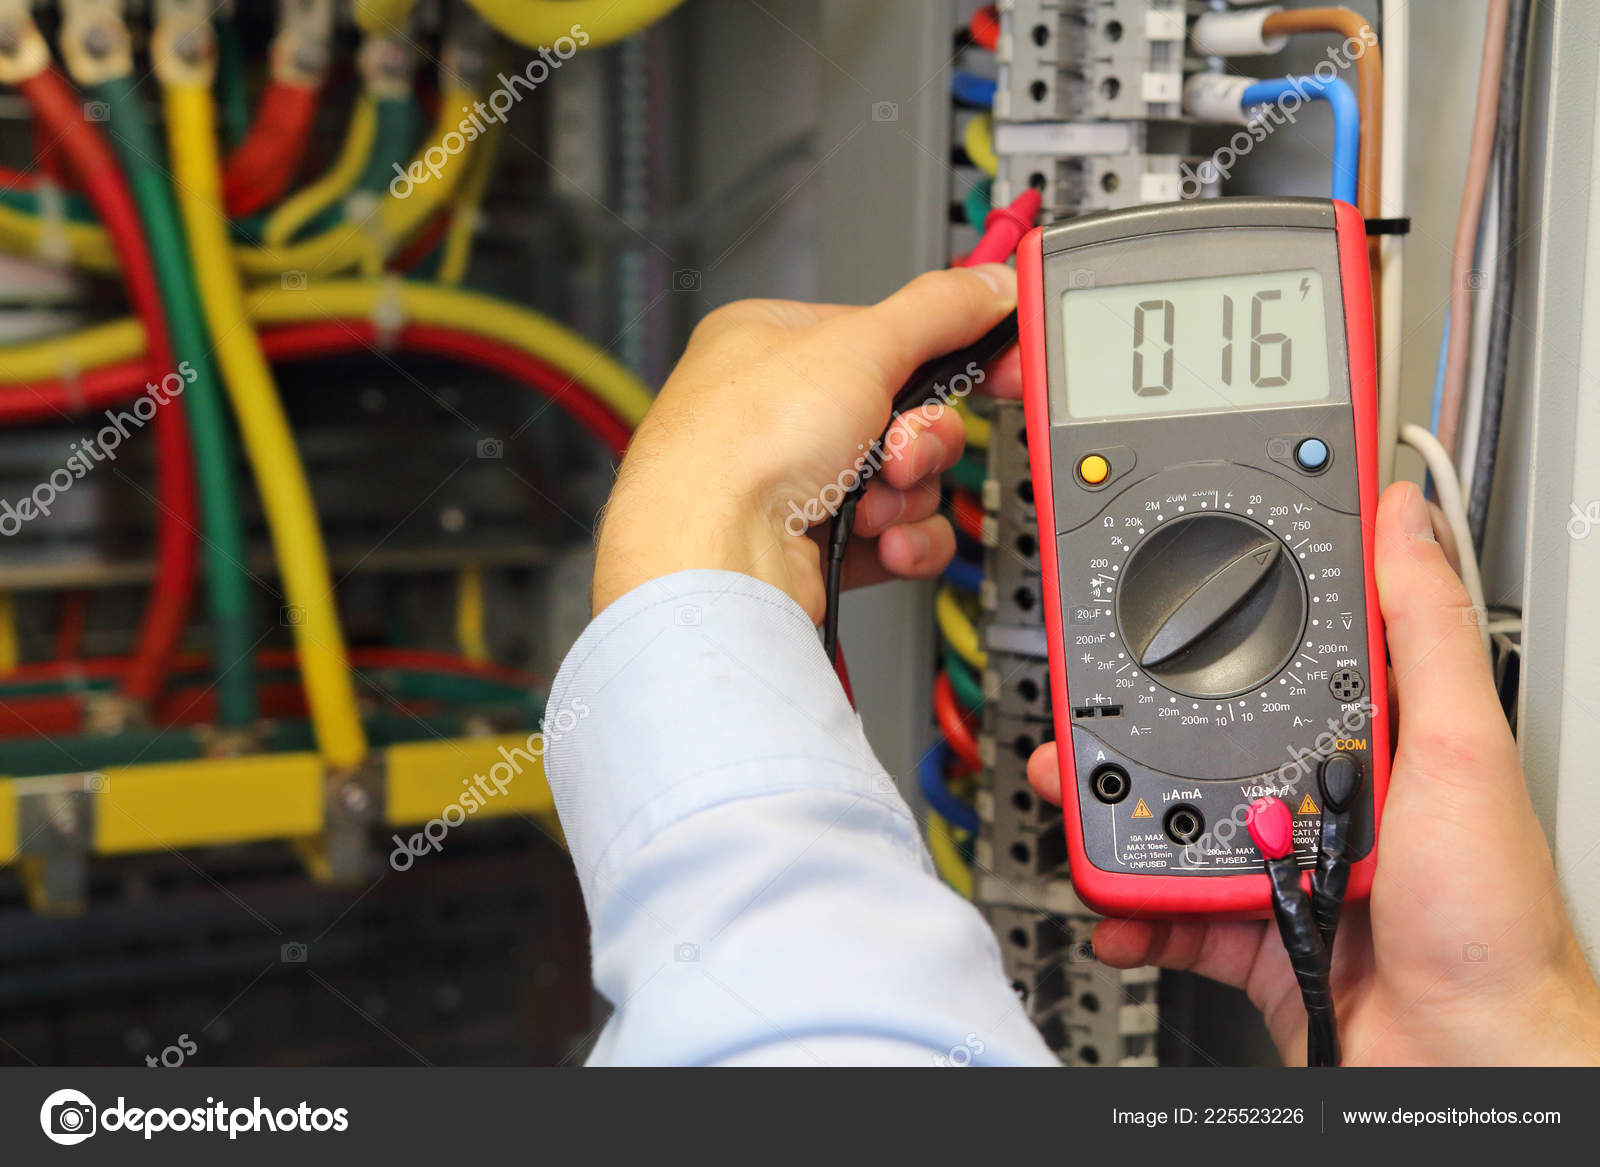 multimeter in hands of electrician. checking voltage in electrical ...  depositphotos